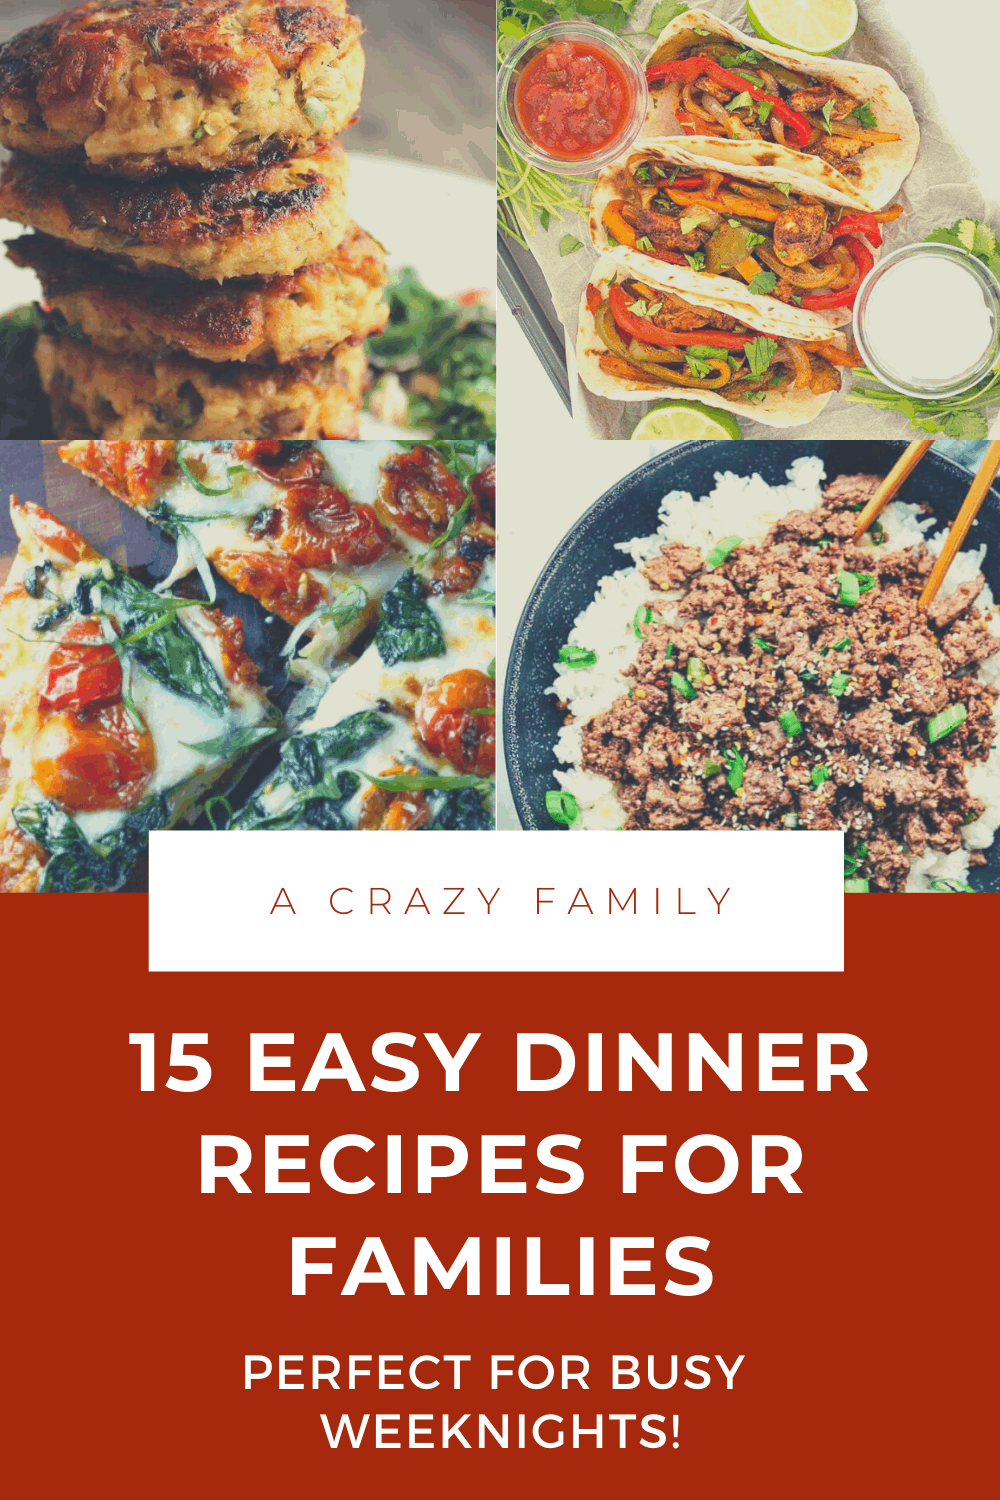 15 Easy Dinner Recipes For Families - Perfect For Busy Weeknights Pinterest pin